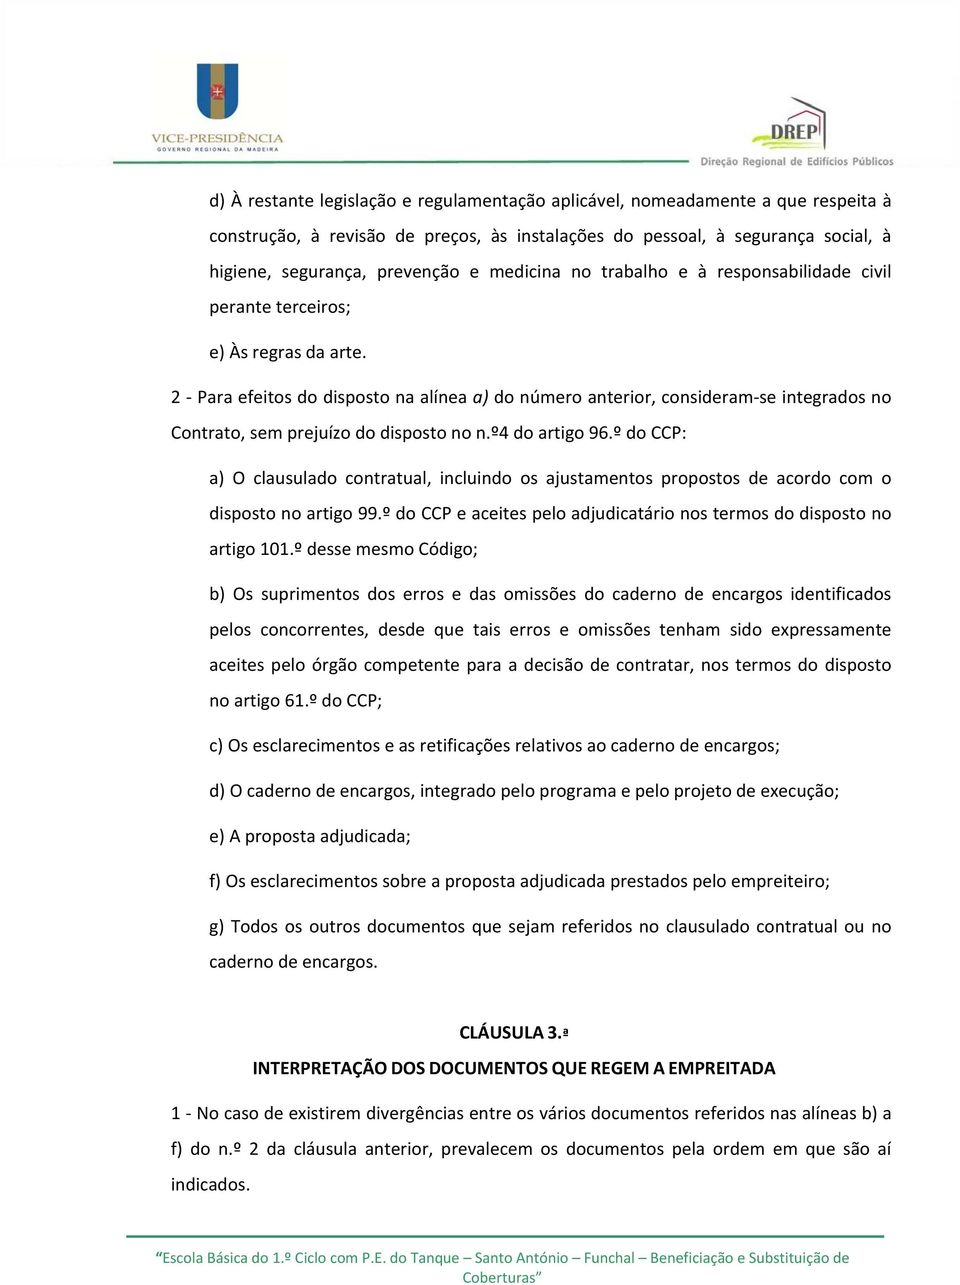 2 Para efeitos do disposto na alínea a) do número anterior, consideram se integrados no Contrato, sem prejuízo do disposto no n.º4 do artigo 96.